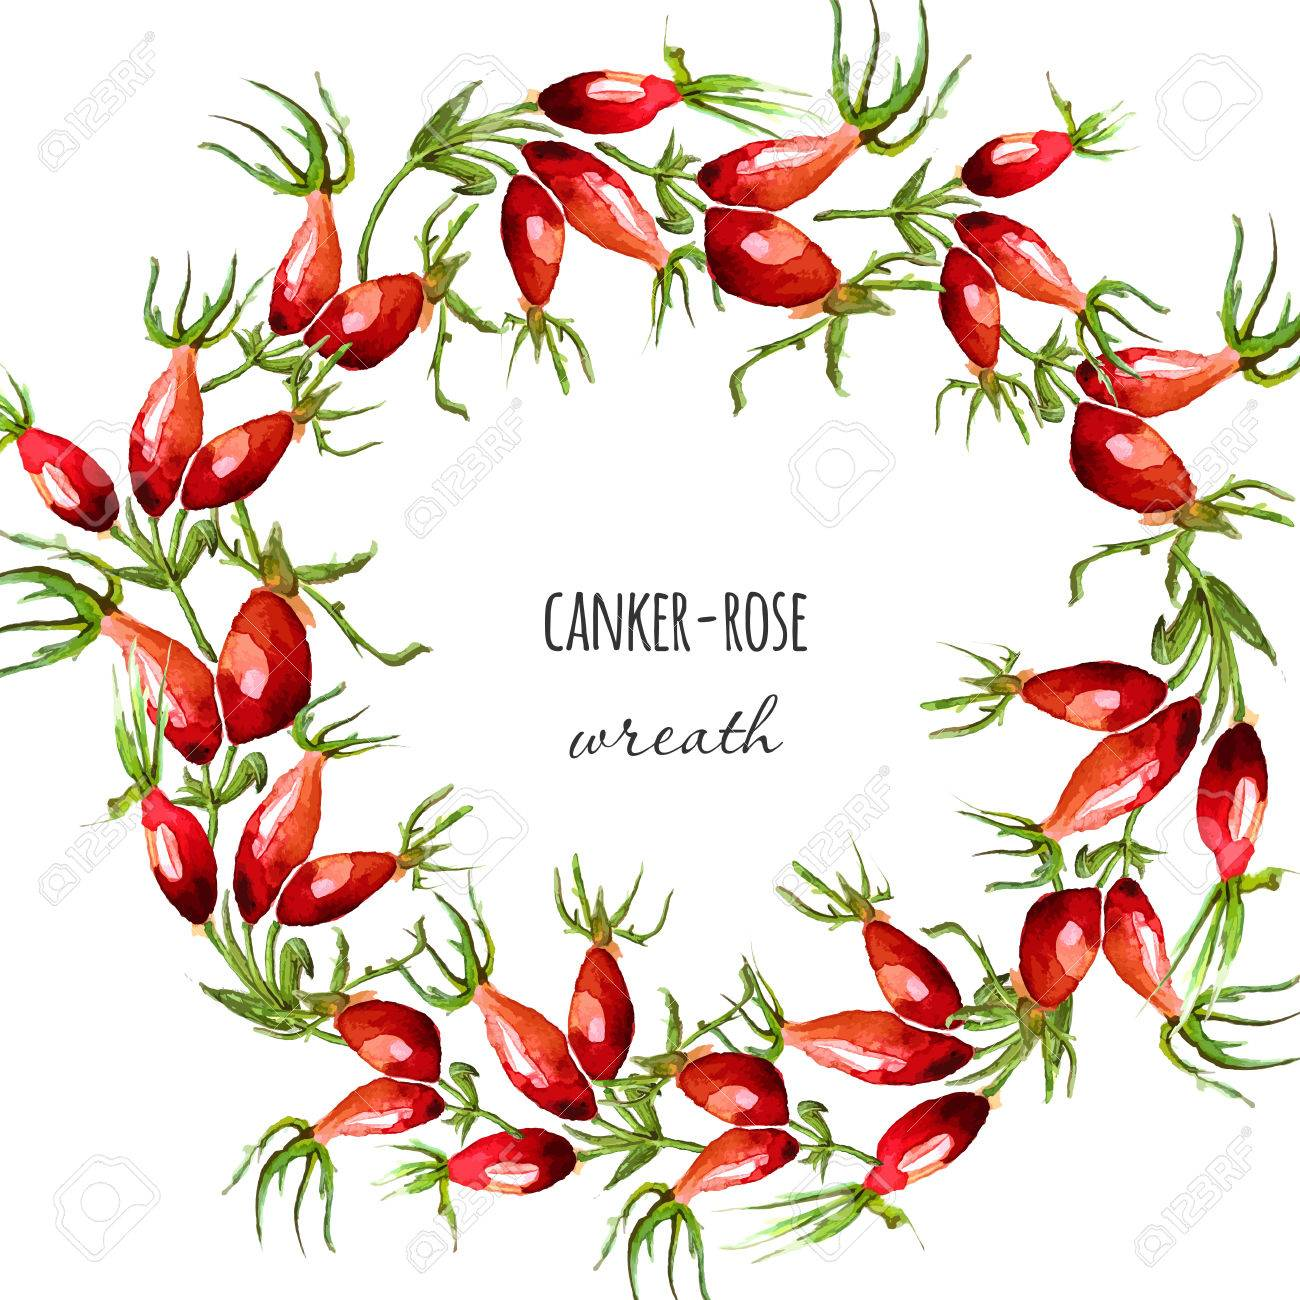 Watercolor Hand Drawn Illustrated Canker Rose Wreath Fall Harvest